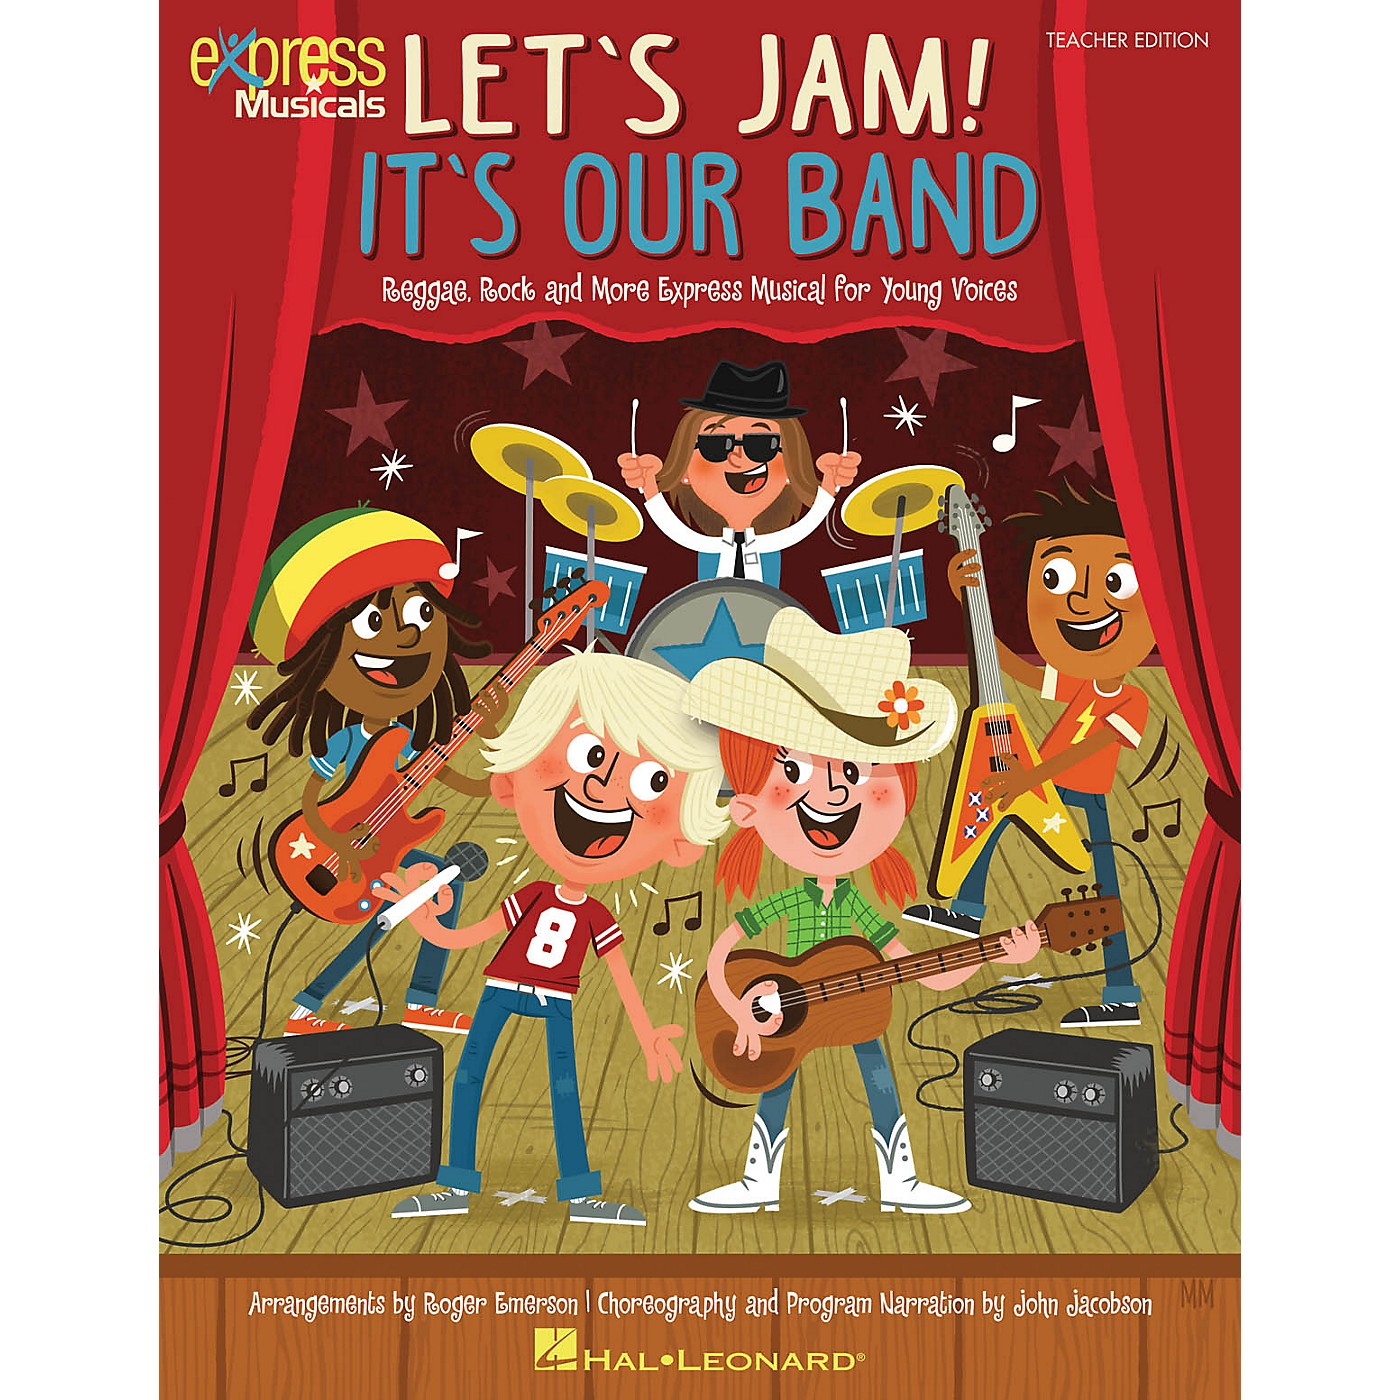 Hal Leonard Let's Jam! It's Our Band singer 20 pak Composed by Roger Emerson thumbnail